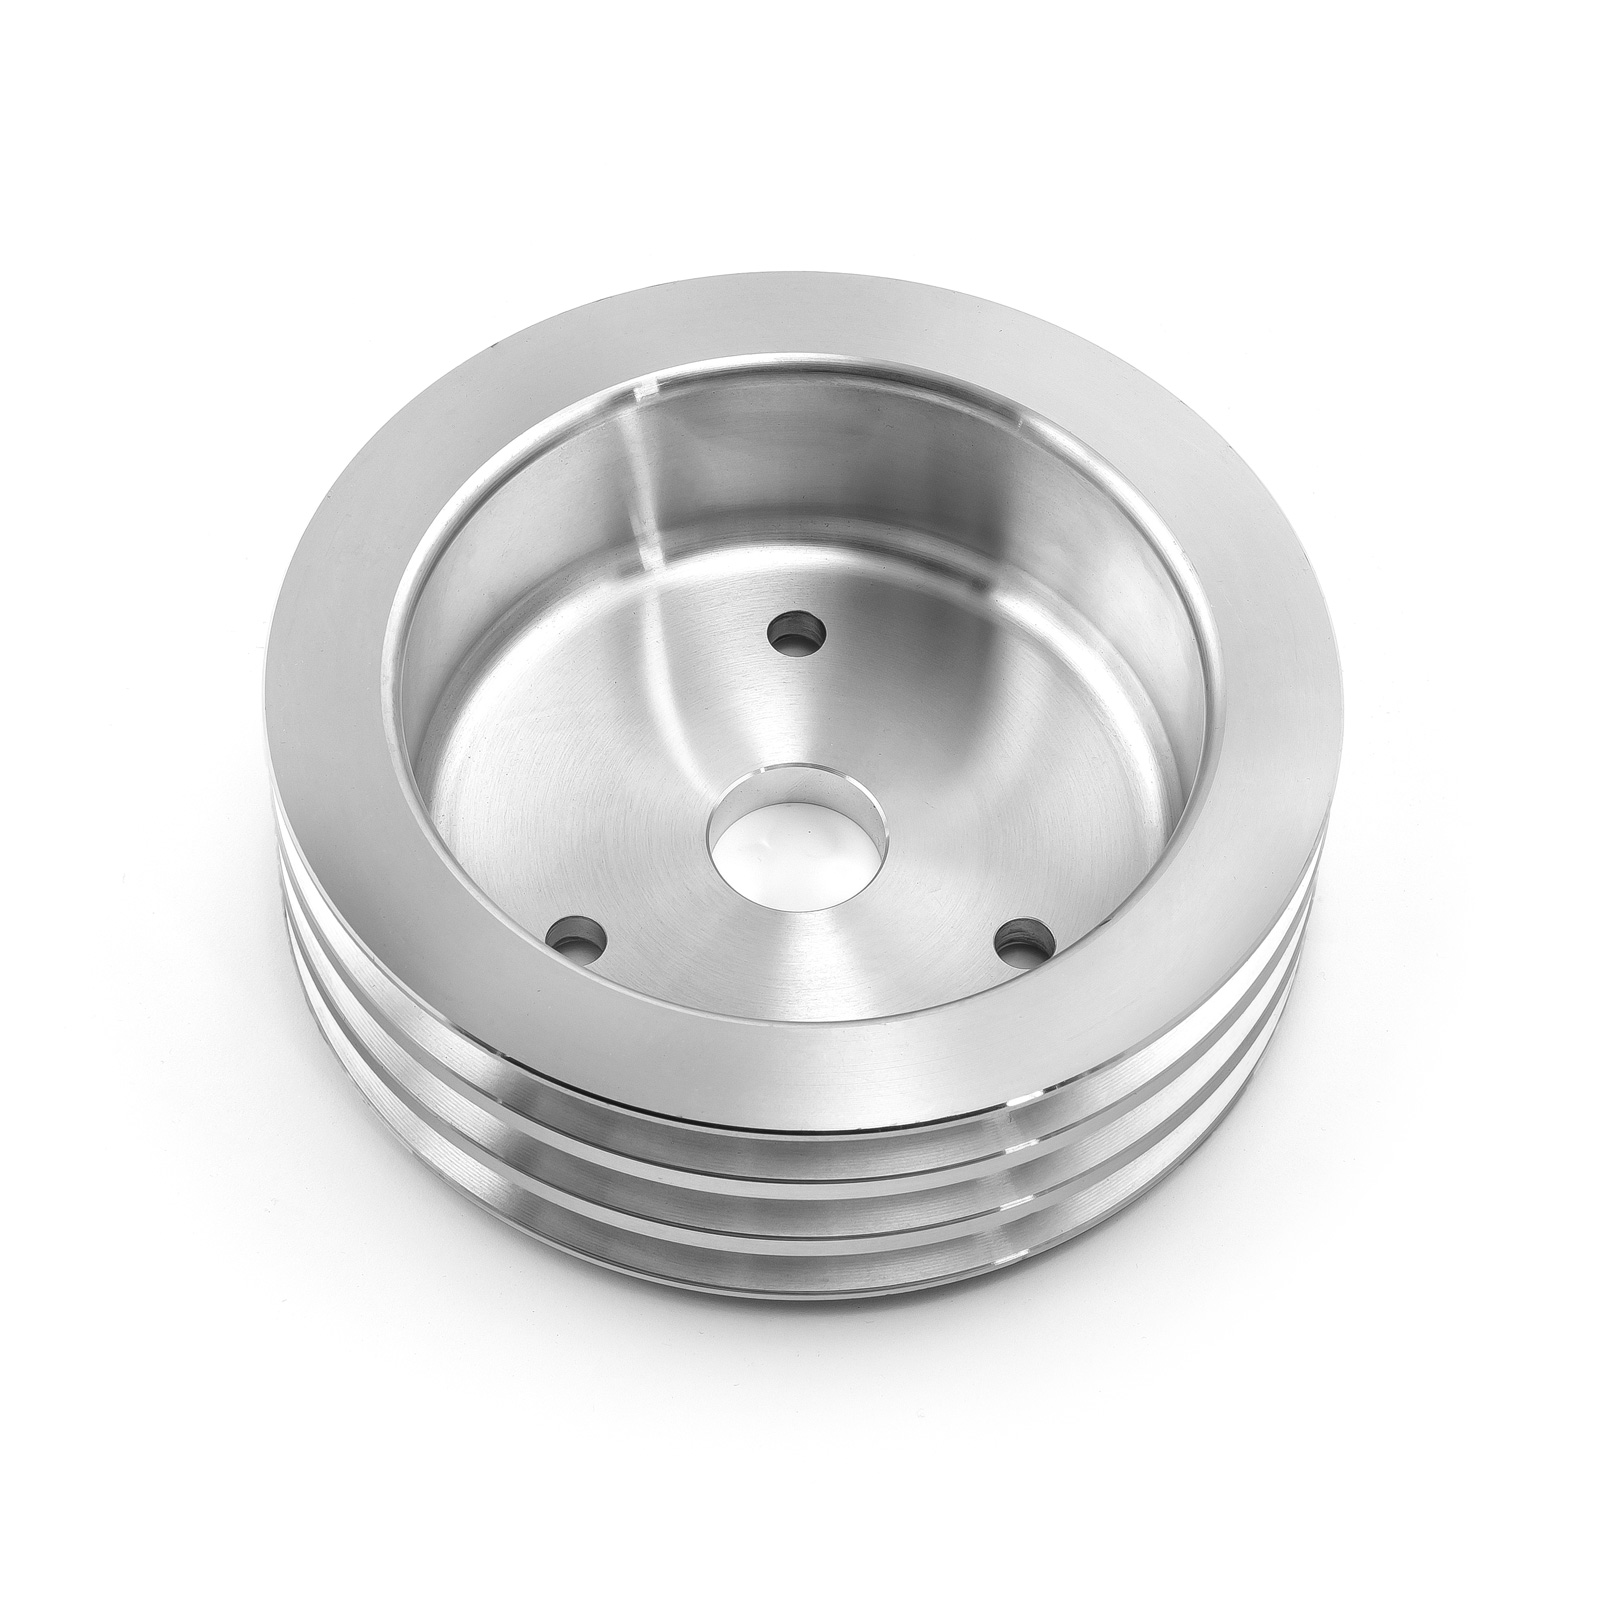 Chevy BBC 454 Billet Aluminum Short Water Pump Swp 3 Groove Crank Pulley